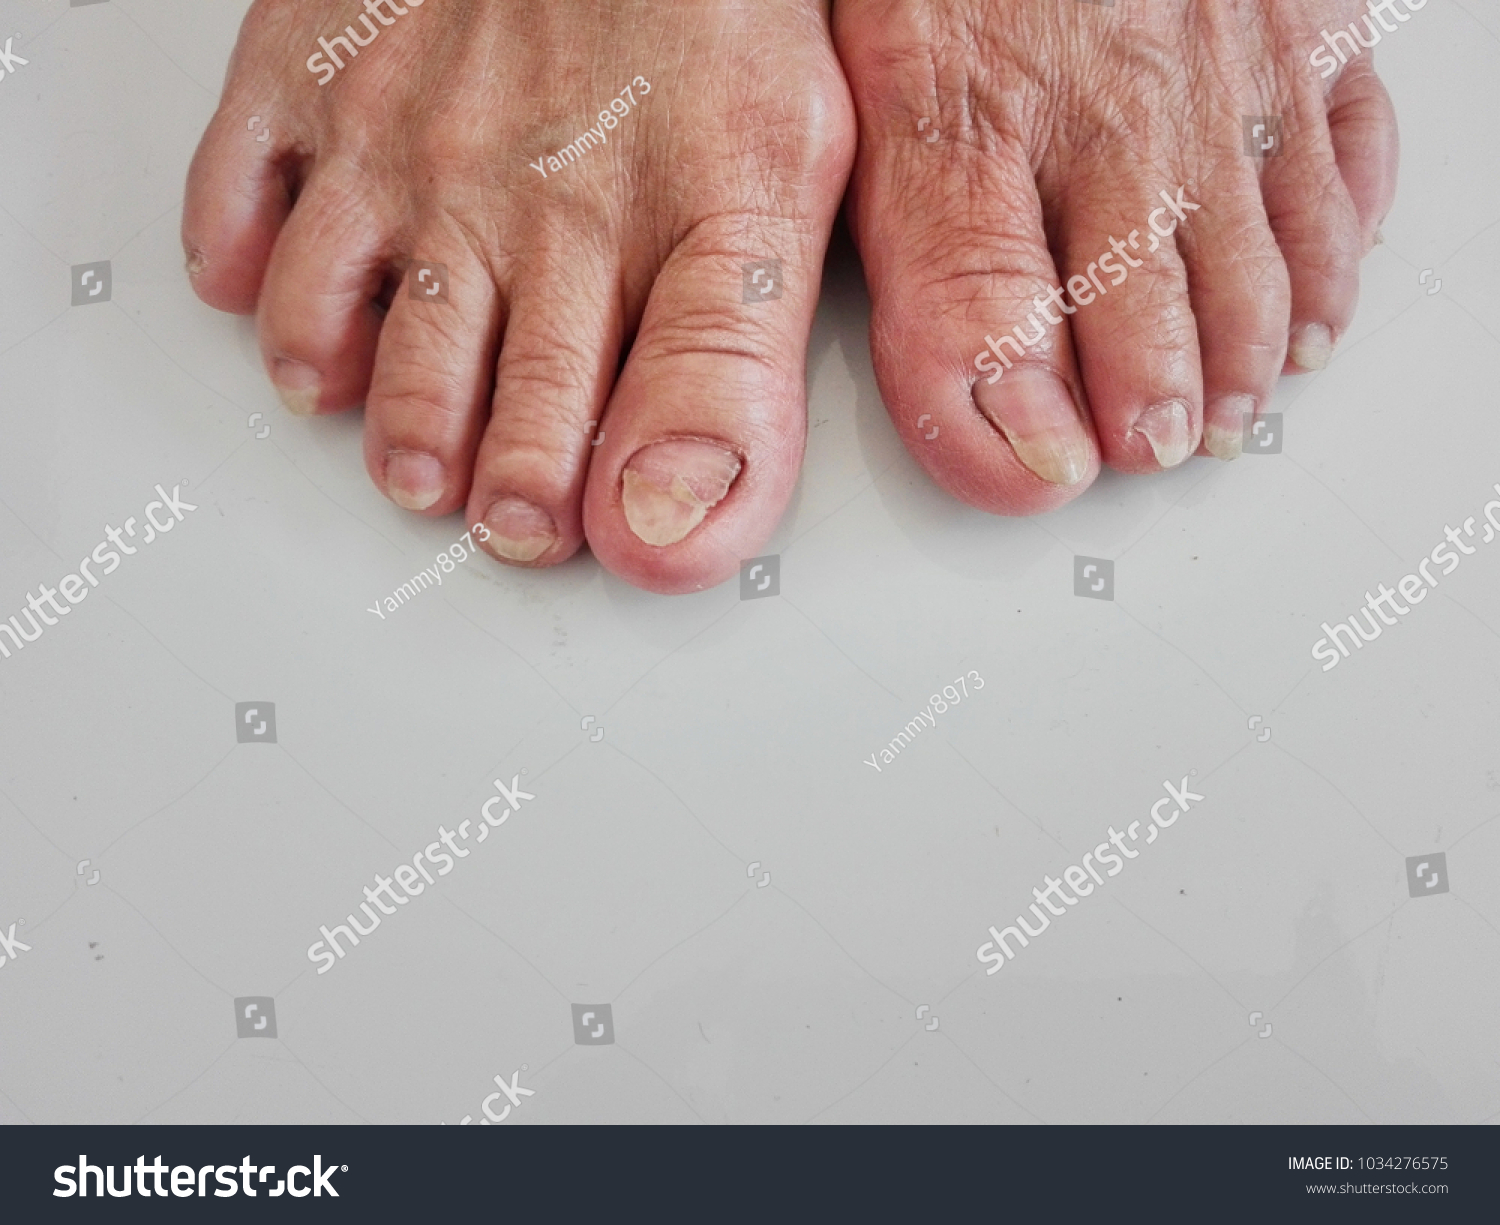 Skin Wrinkles Wrinkles By Age Dirty Nails Stock Photo (Royalty Free ...